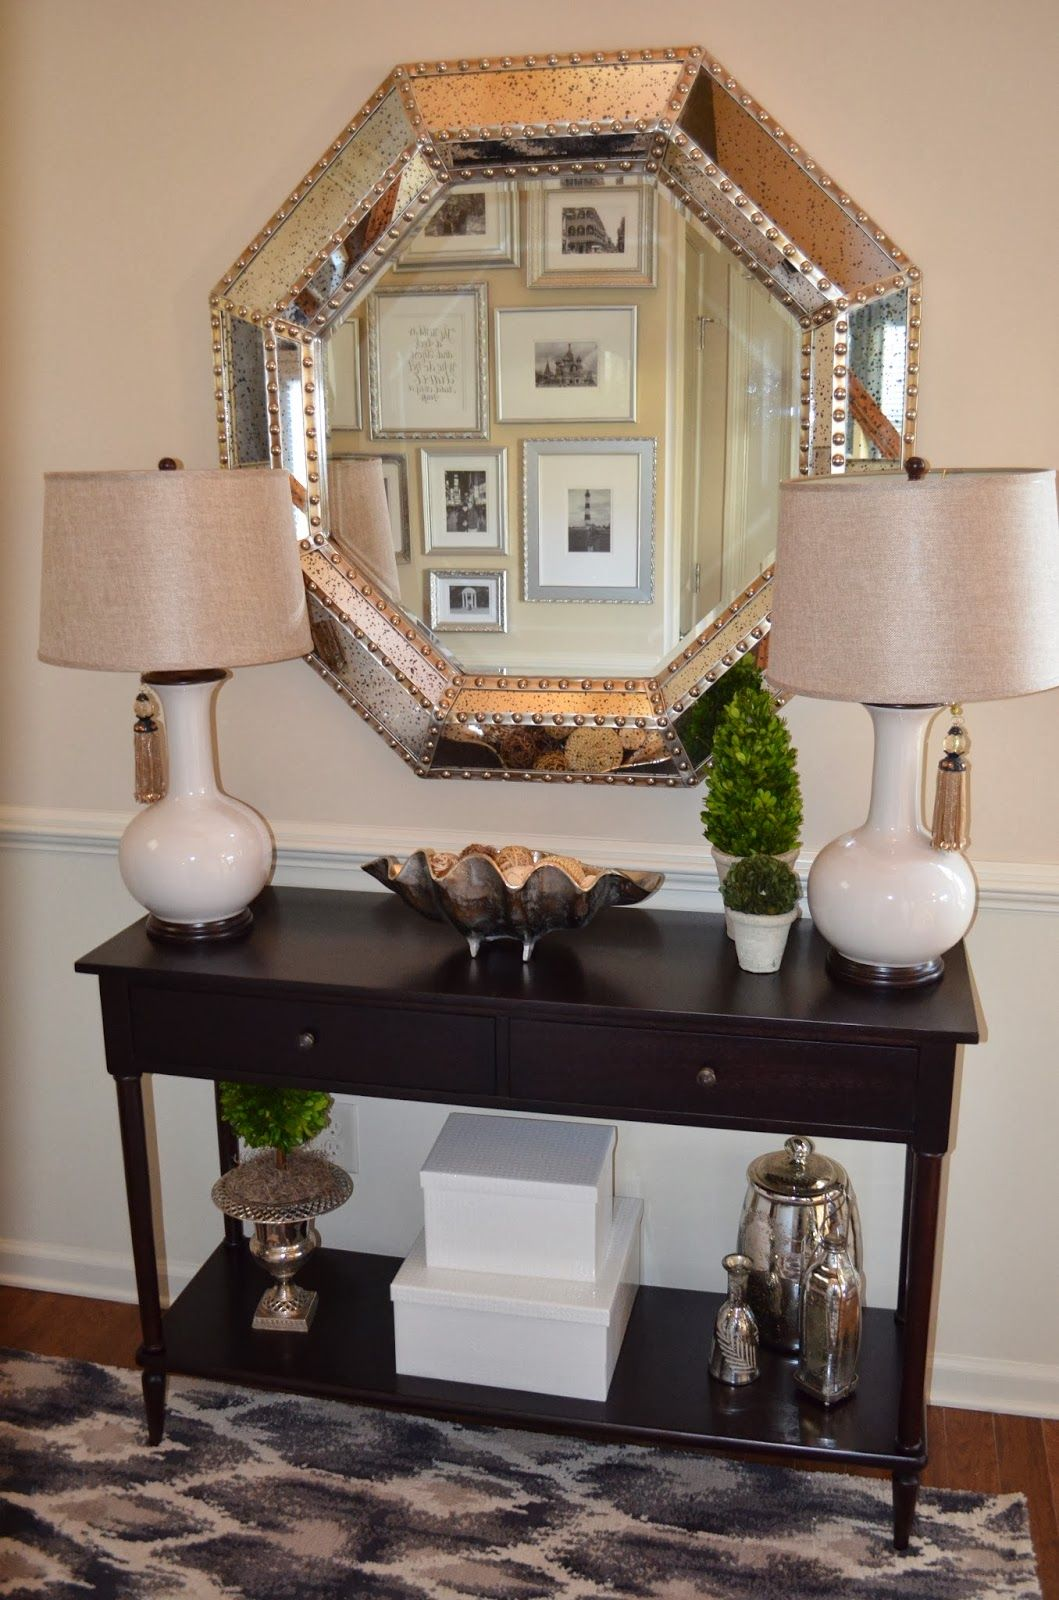 Foyer decor with entryway console table and large silver mirror